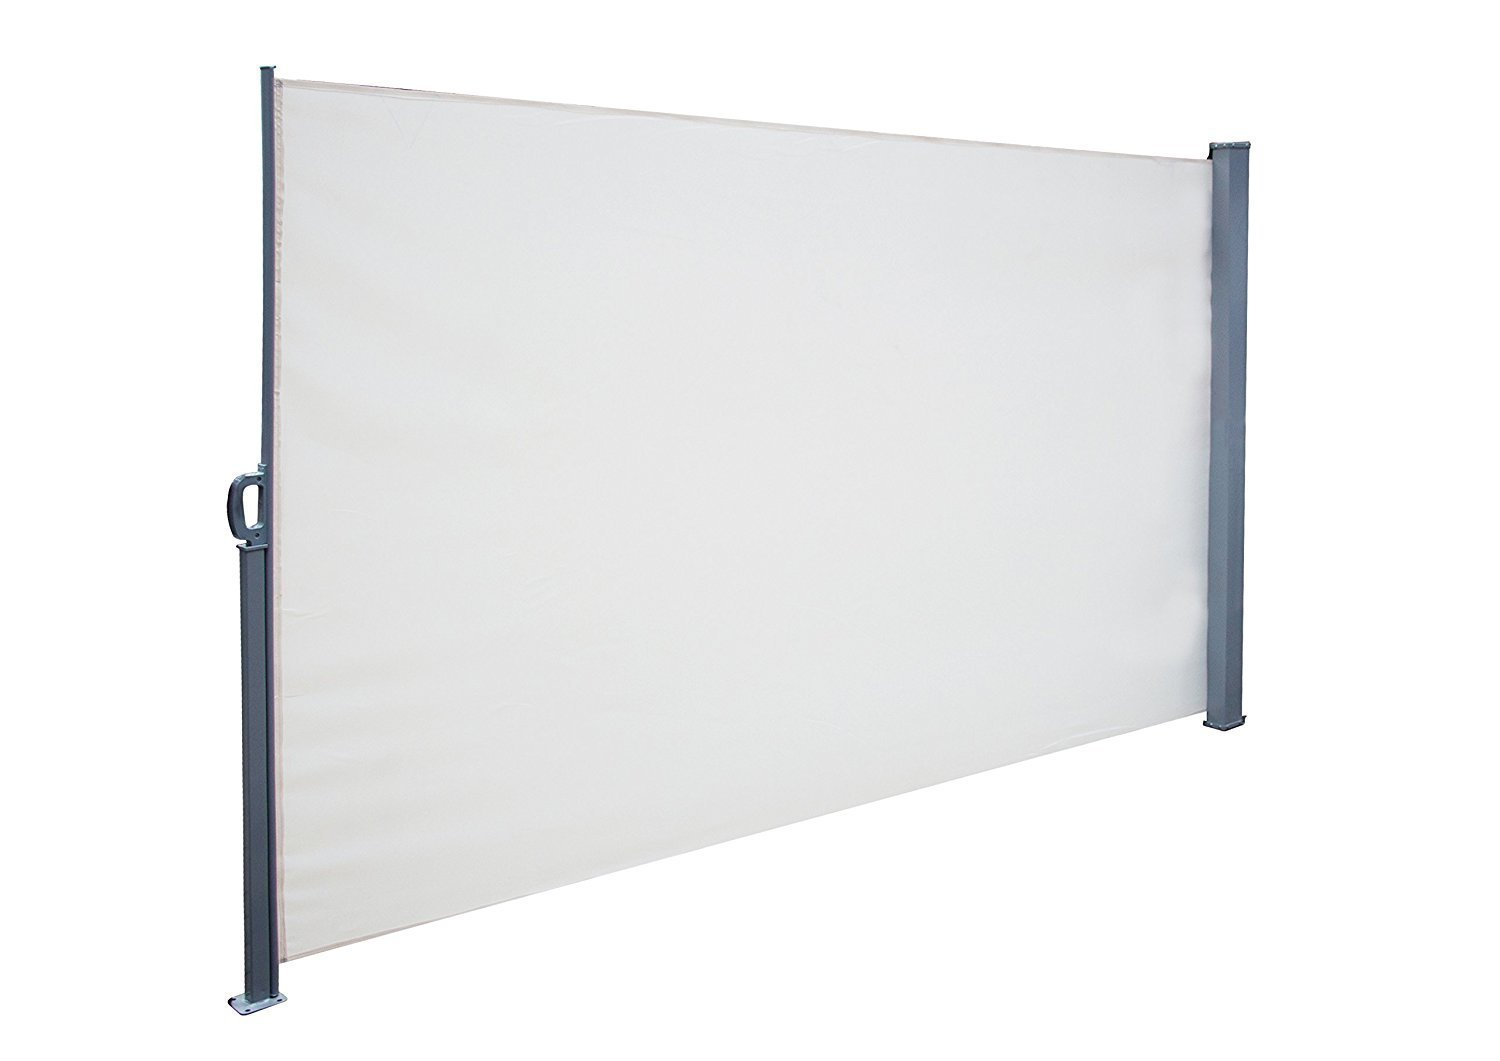 SimLife Privacy Screen Shade Retractable Side Awning Patio Balcony Outdoor with Steel Support Pole, White